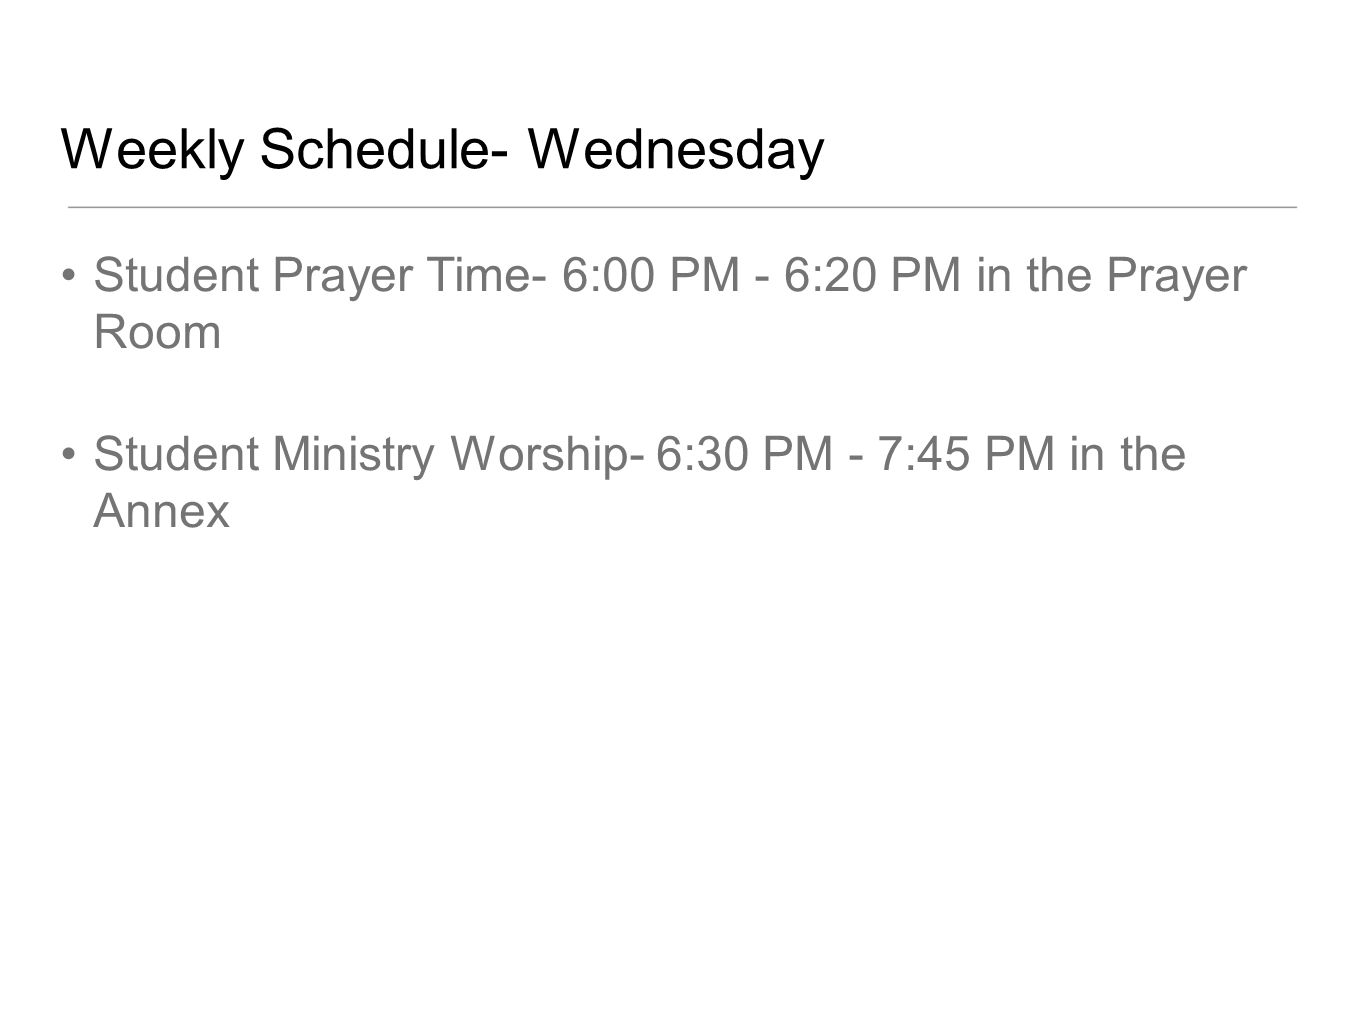 Weekly Schedule- Wednesday Student Prayer Time- 6:00 PM - 6:20 PM in the Prayer Room Student Ministry Worship- 6:30 PM - 7:45 PM in the Annex